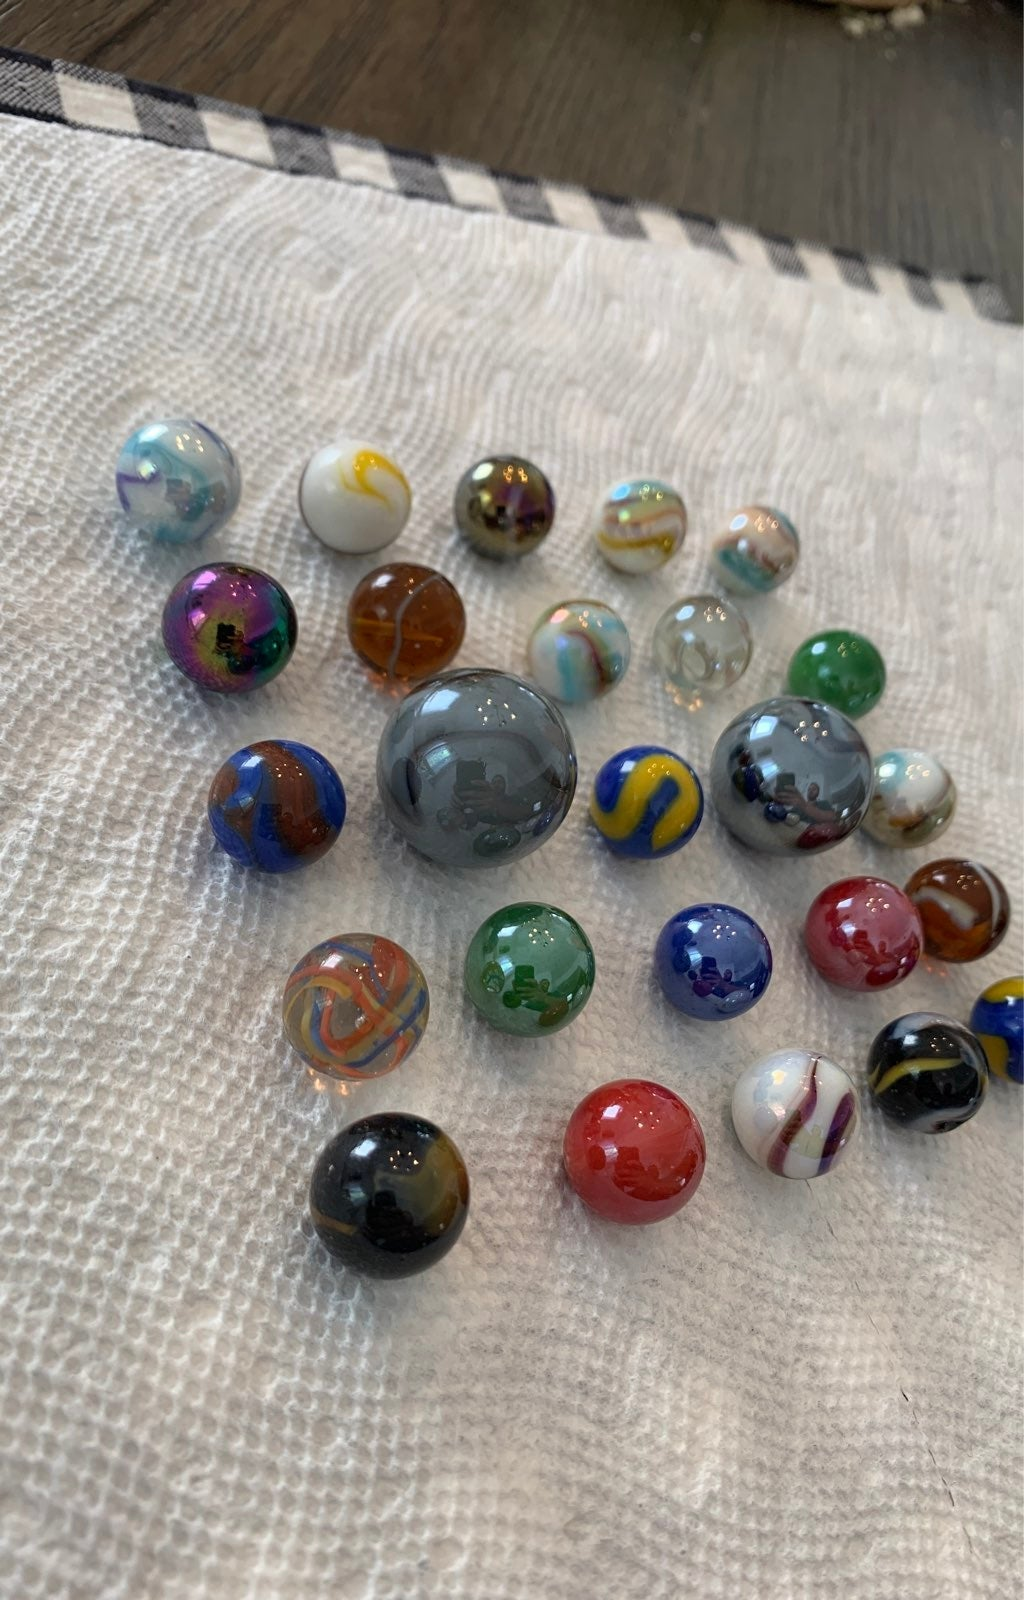 25 vintage and modern marbles